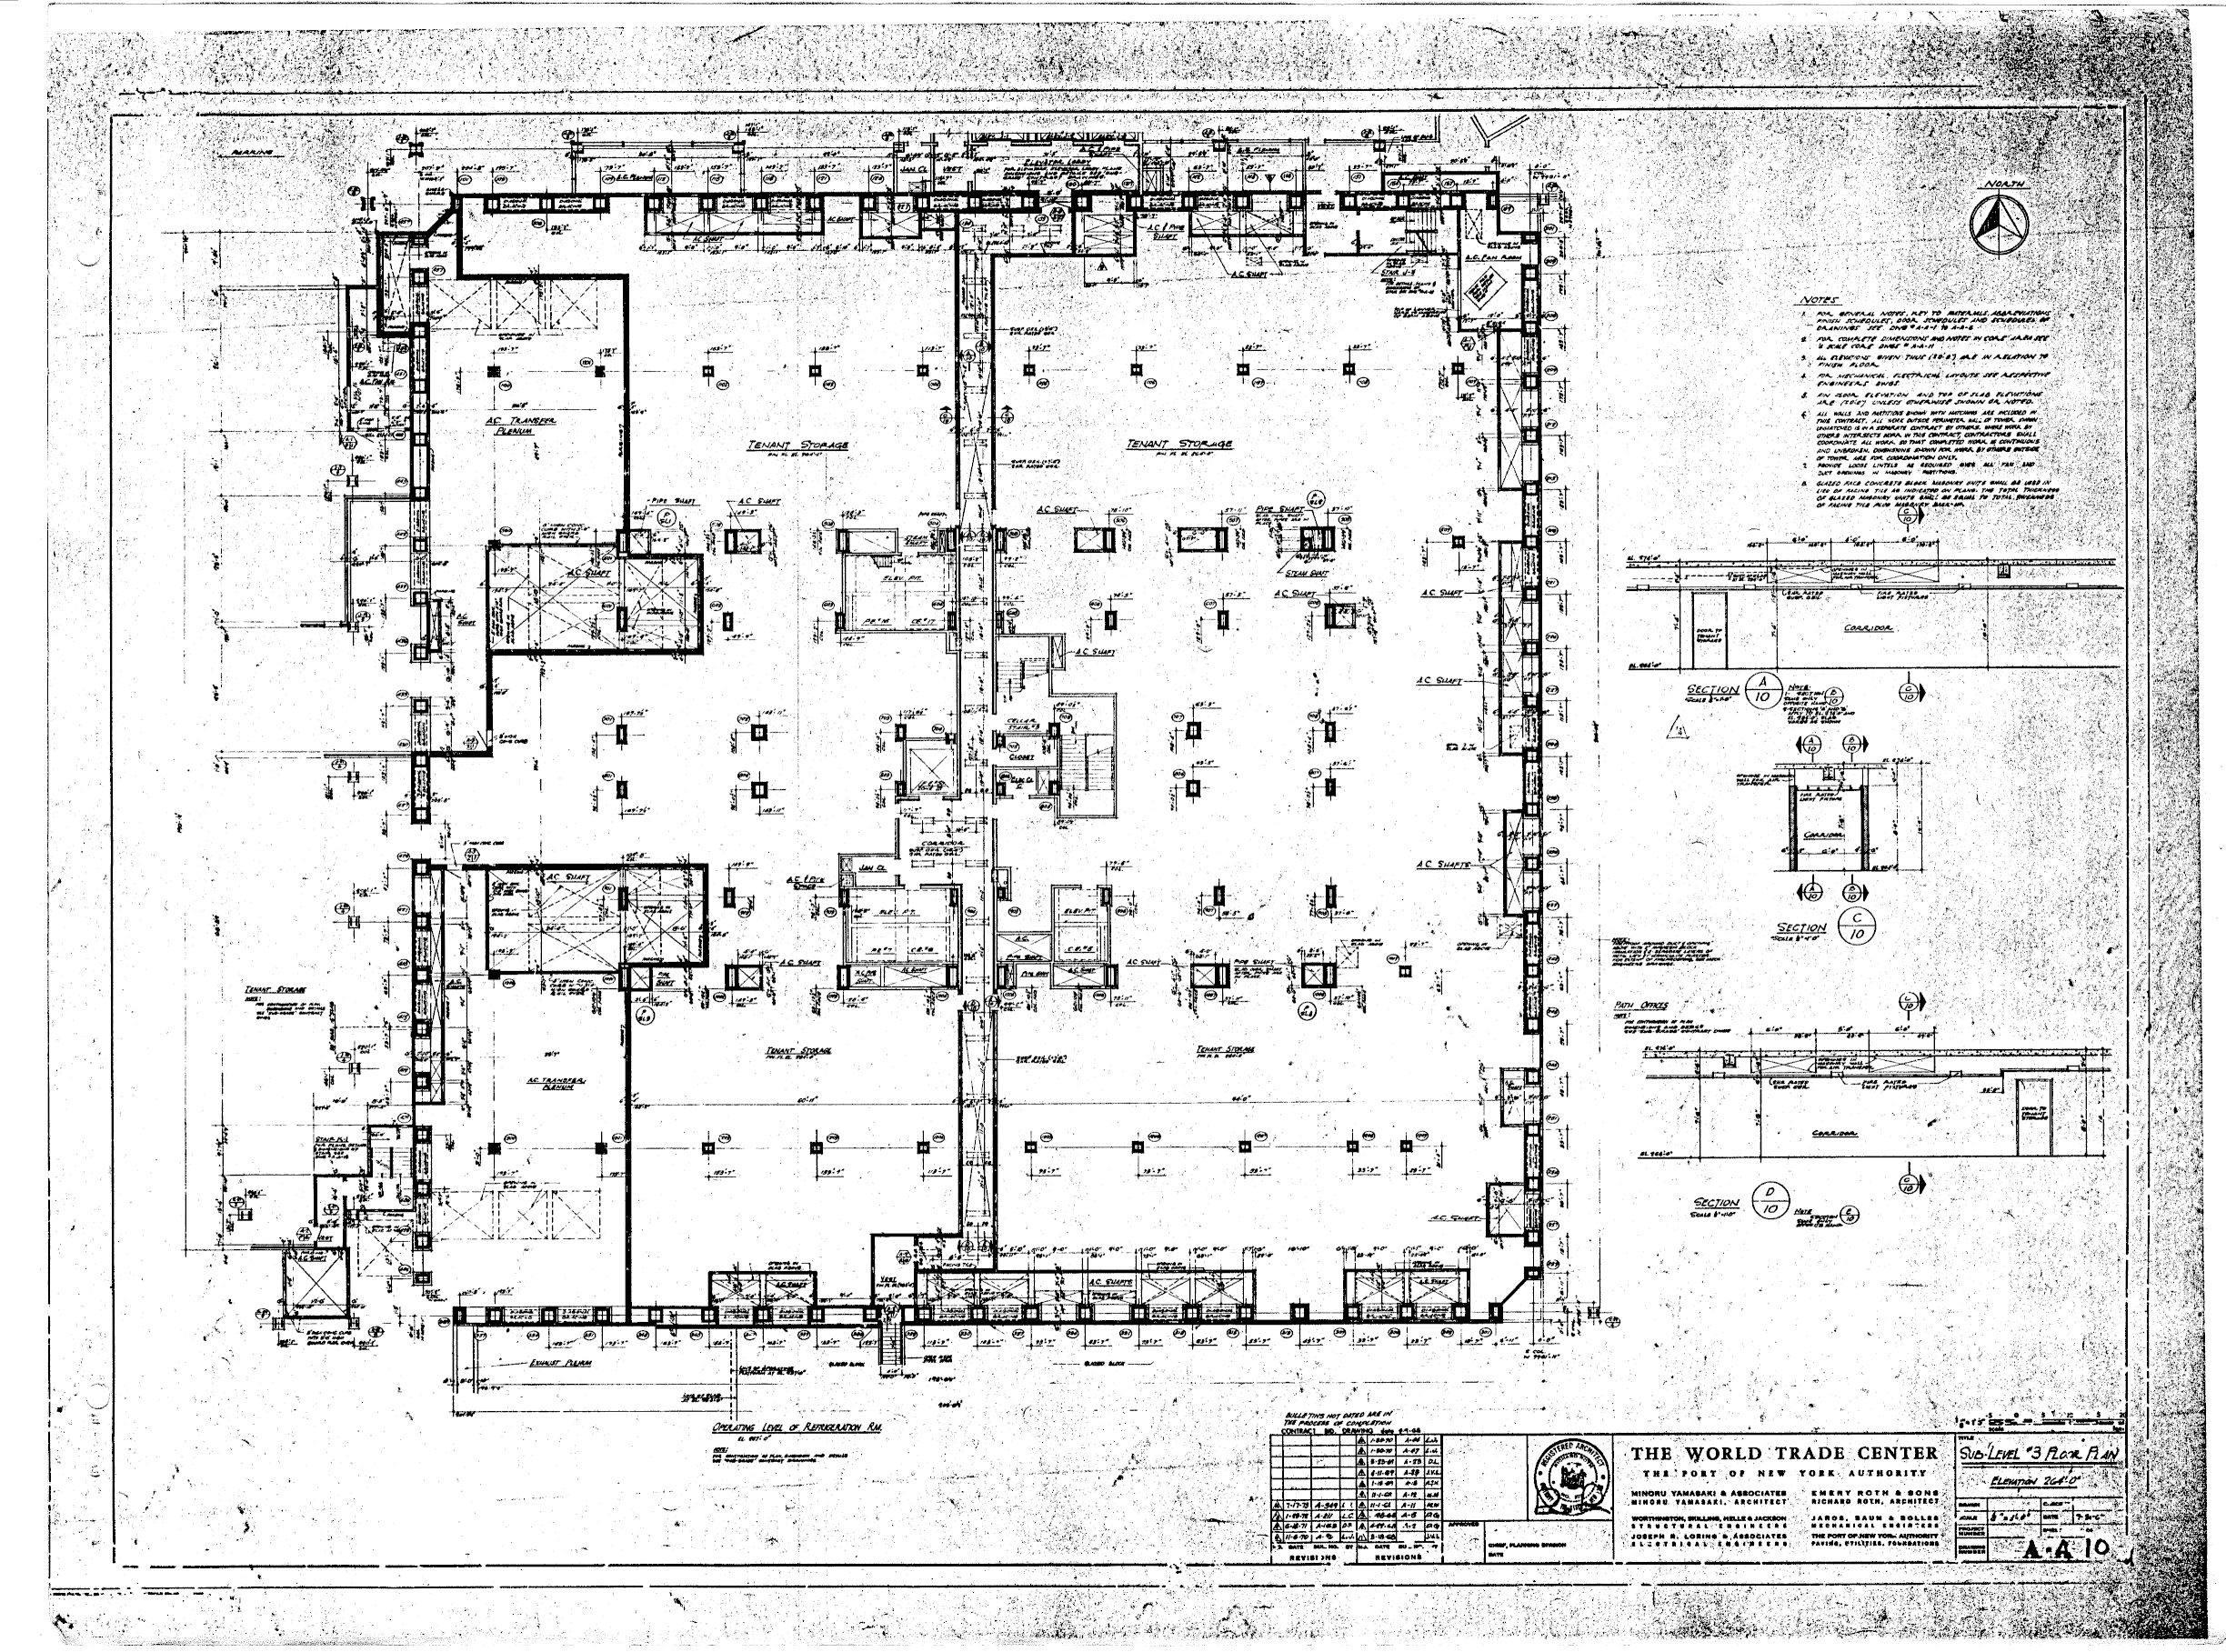 North Tower Blueprints